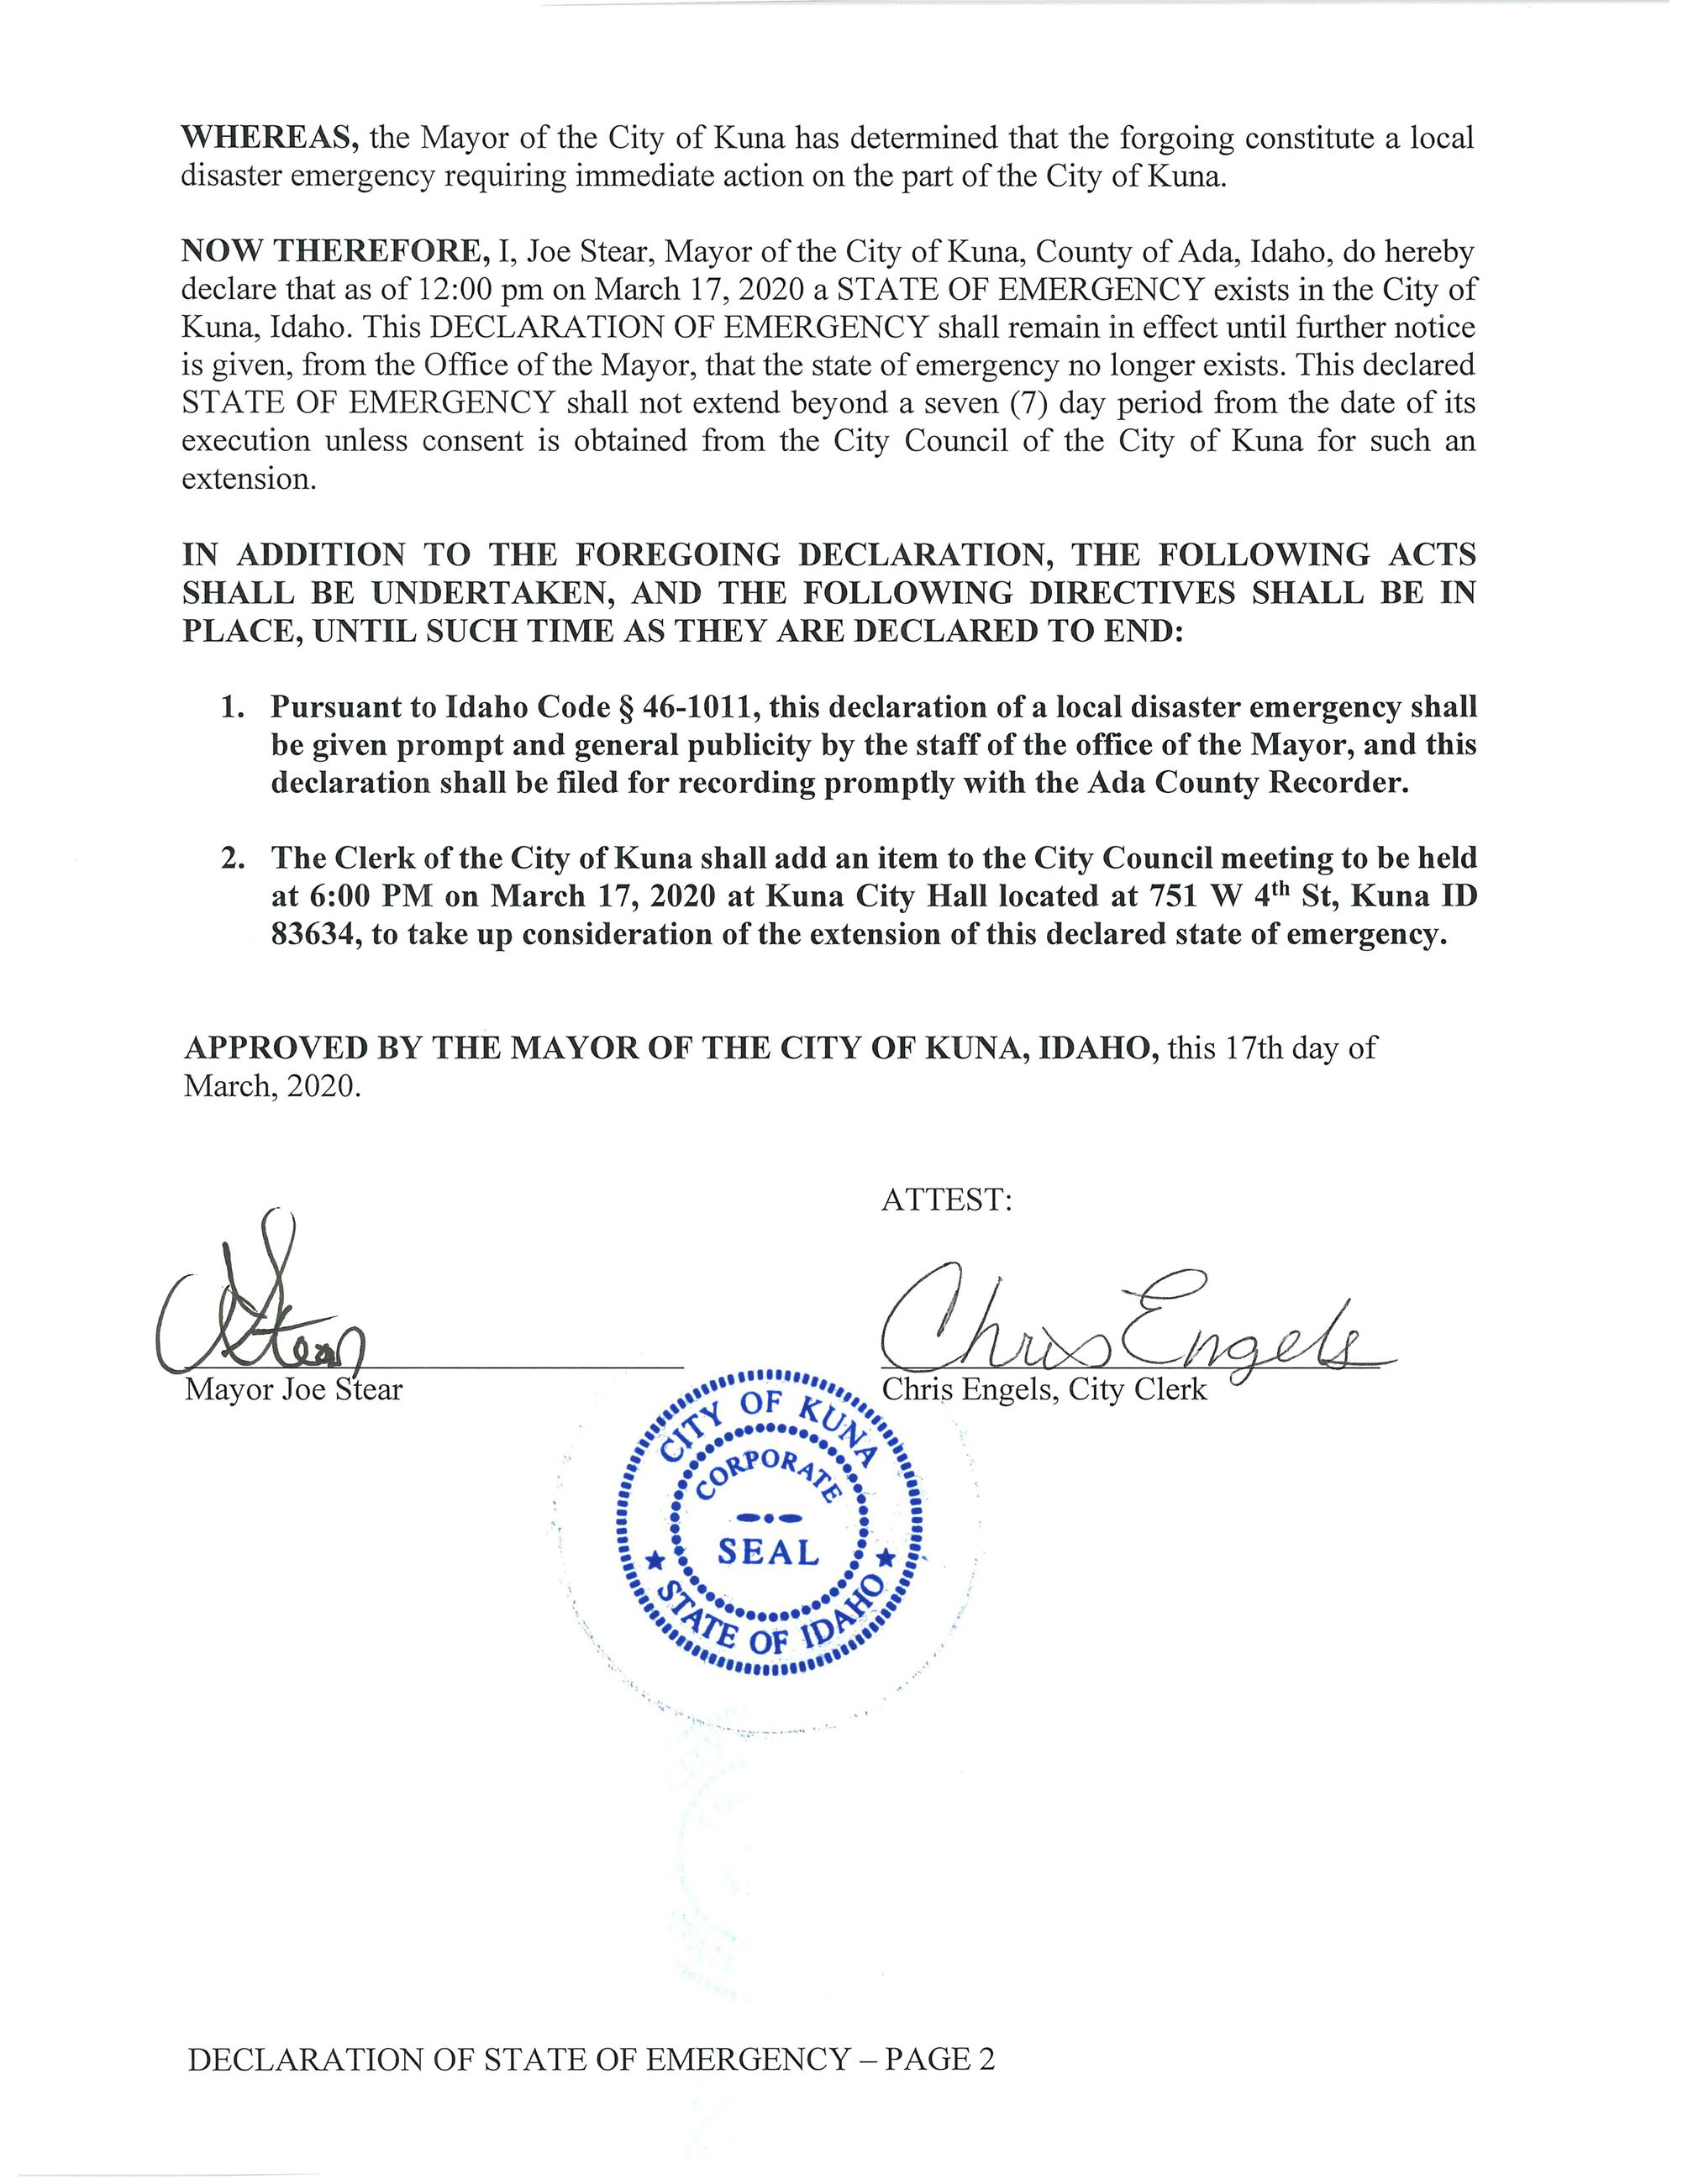 DECLARATION OF EMERGENCY - From The Office Of Mayor Joe Stear - 03.17.2020_Page_2